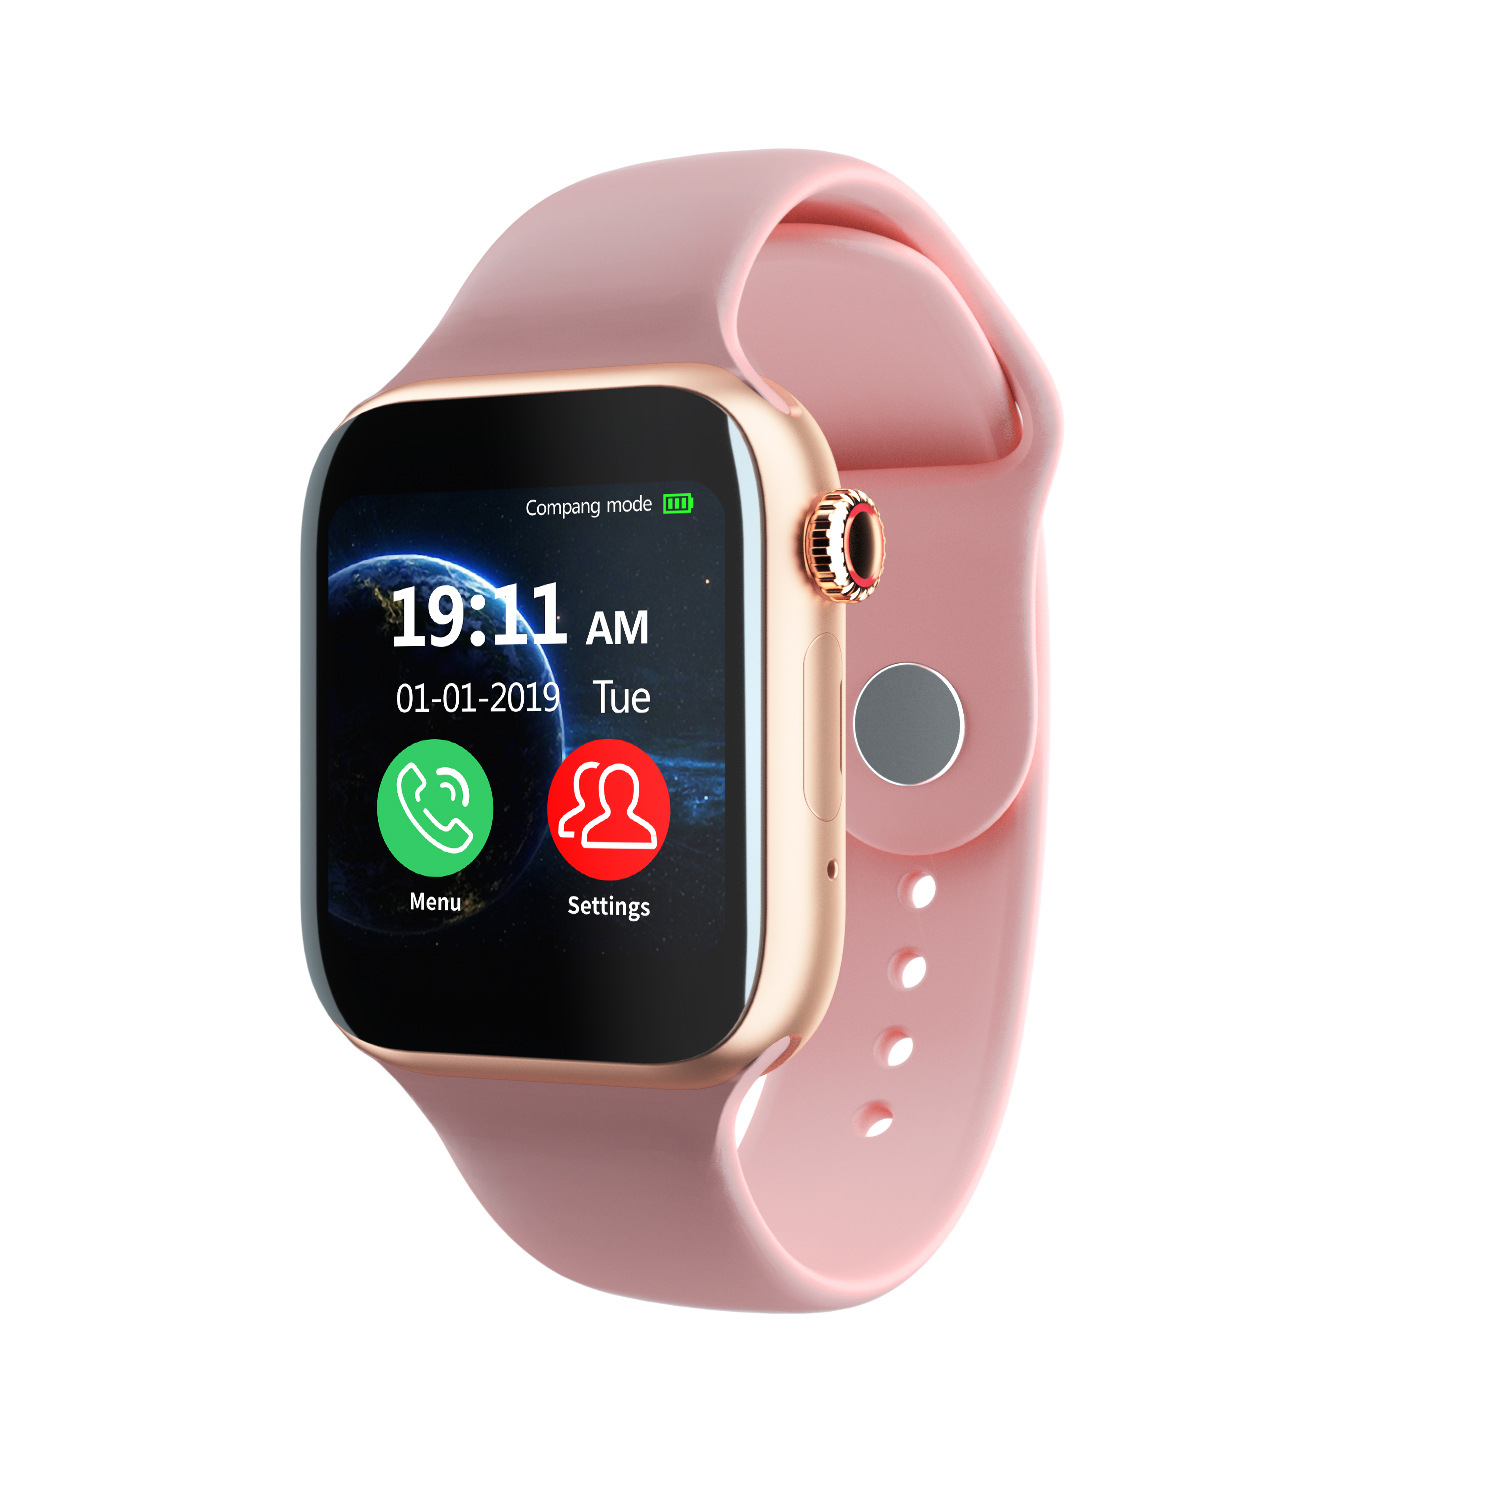 The New Phone Smart Watch Can Be Inserted Into The Card To Make And Receive Heart Rate And Blood Pressure Monitoring Exercise Smart Watch